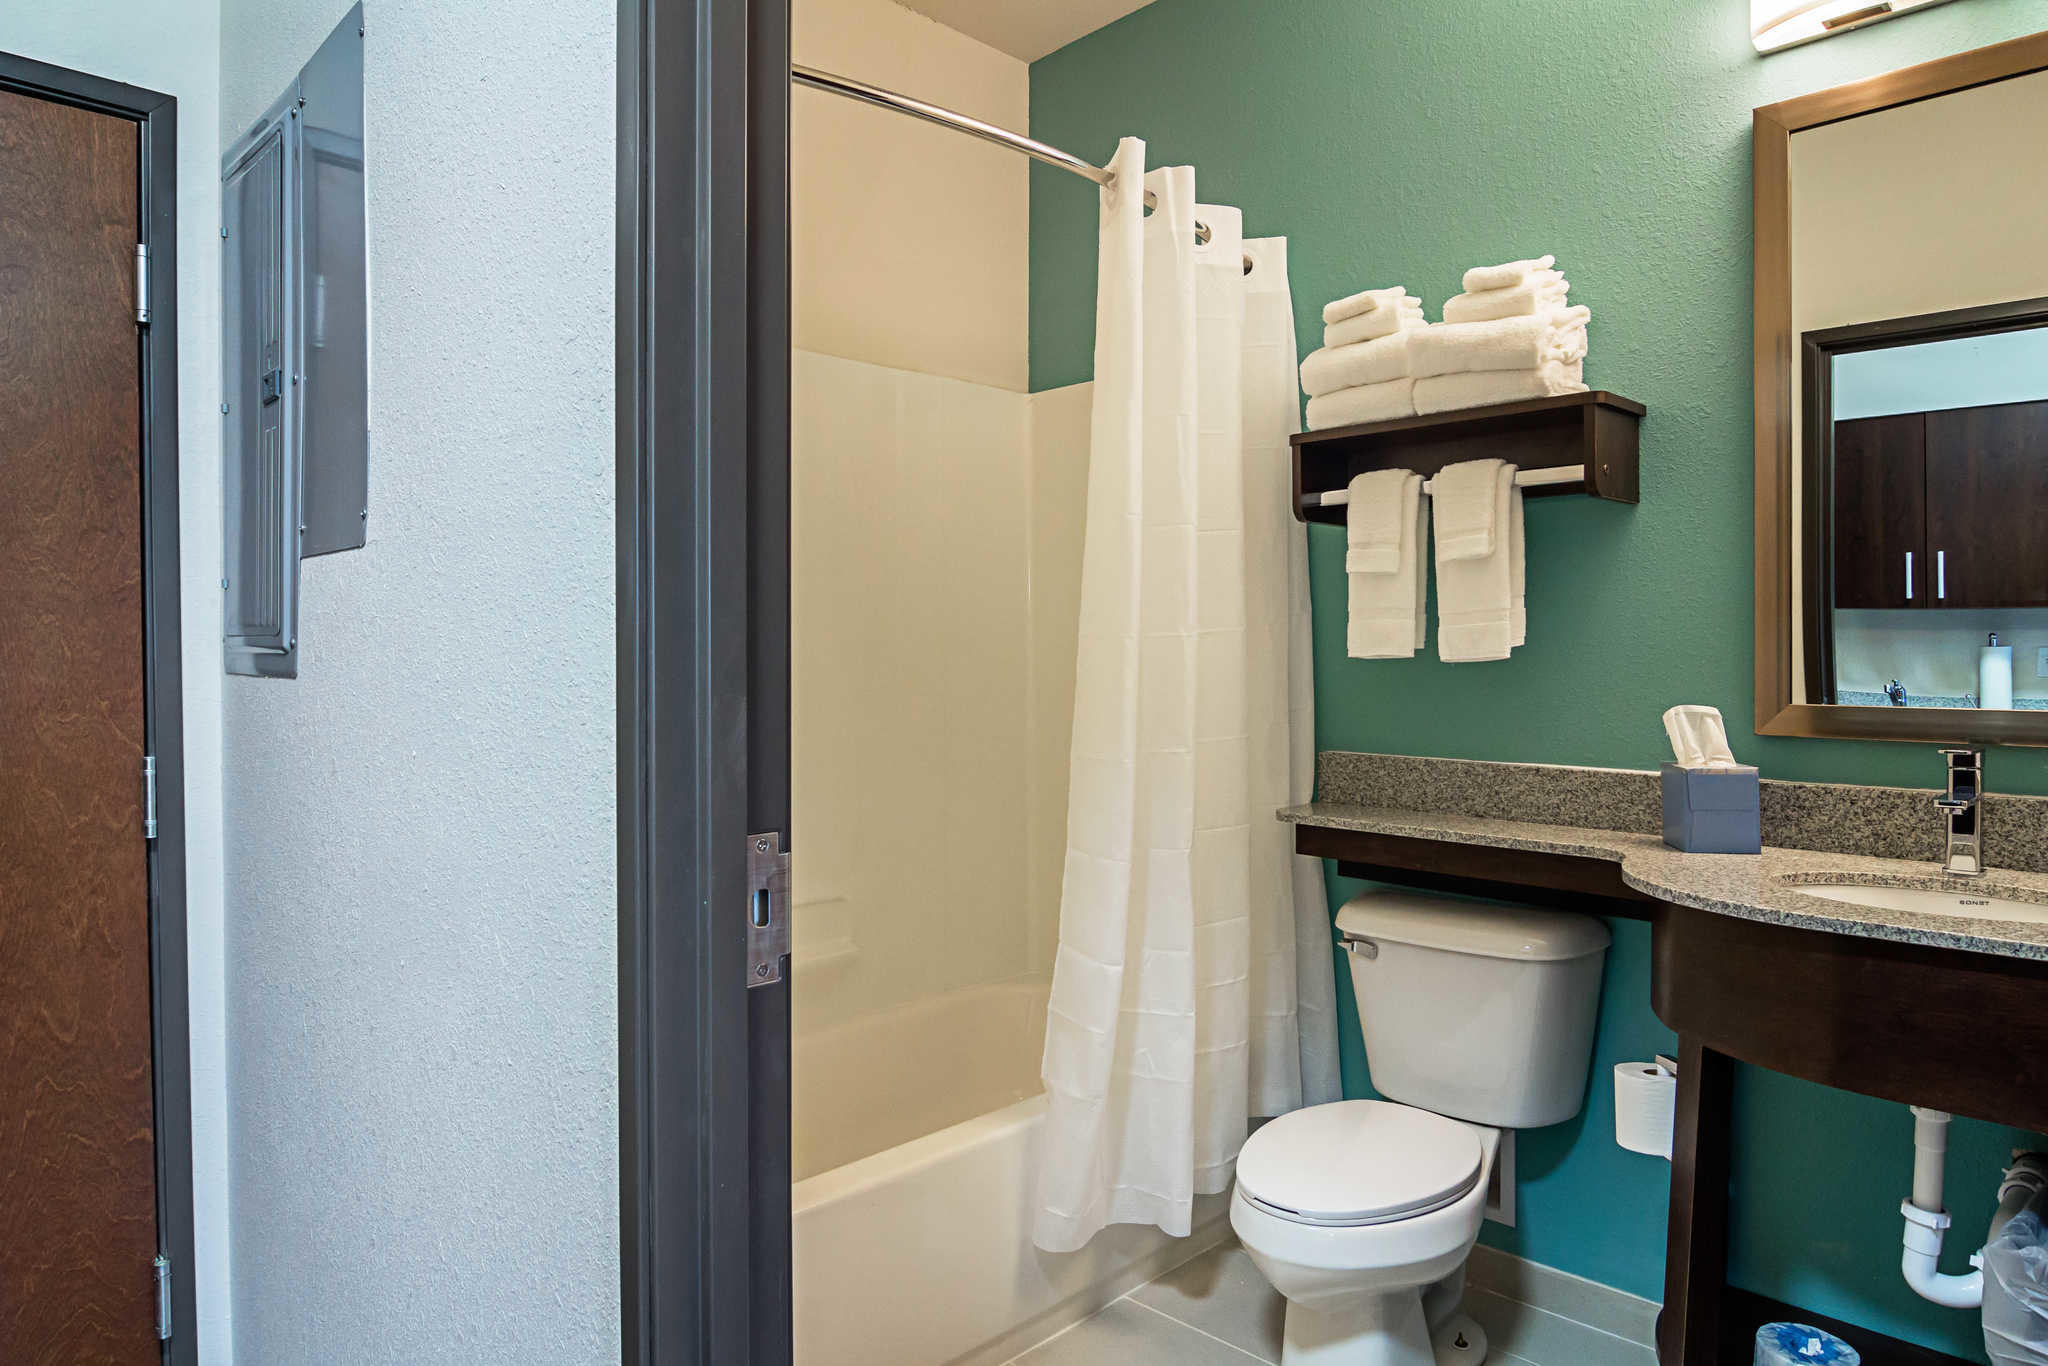 Suburban Extended Stay Hotel image 40